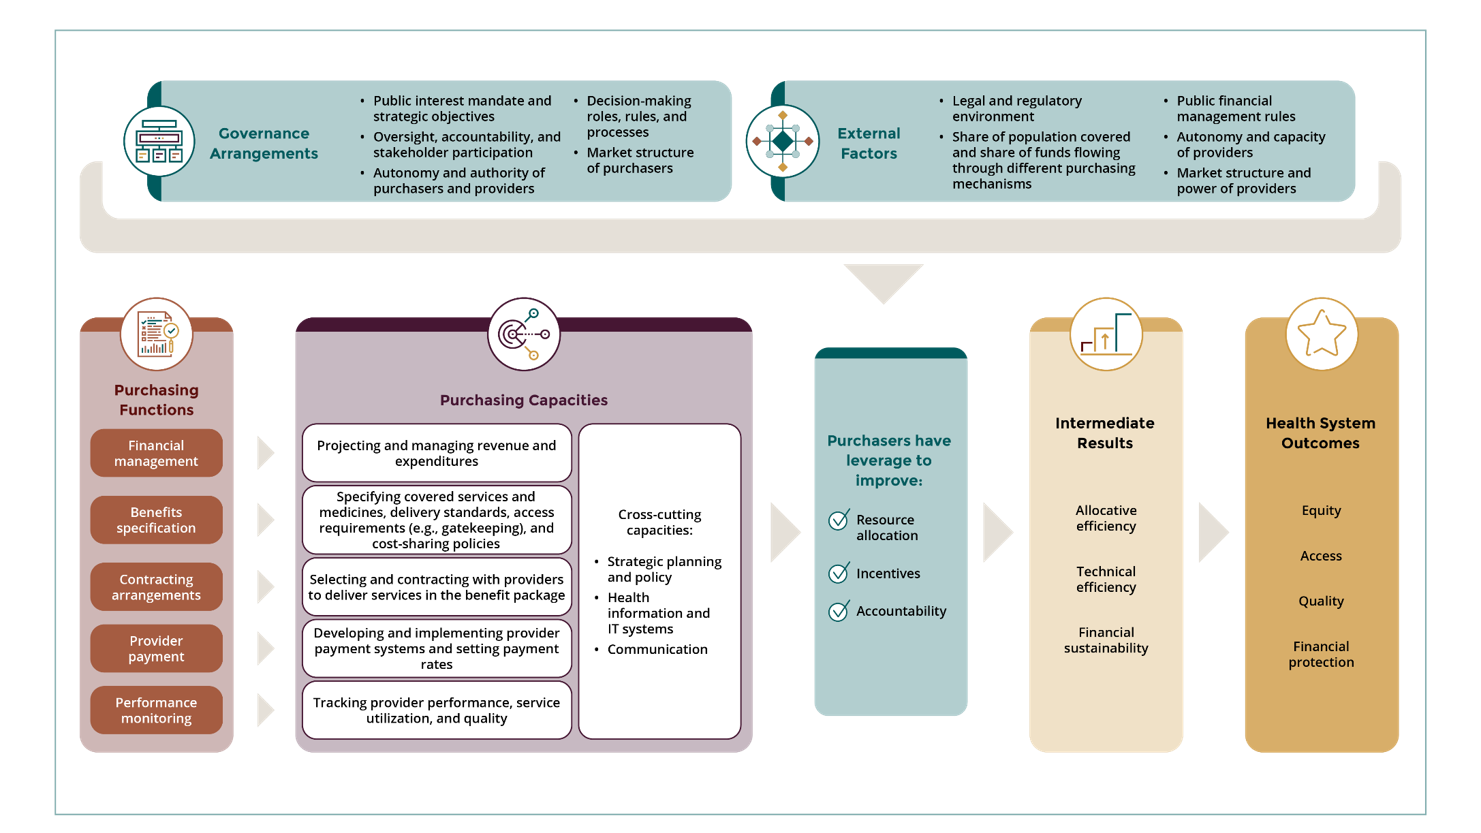 Functional framework to describe health purchasing systems and track progress